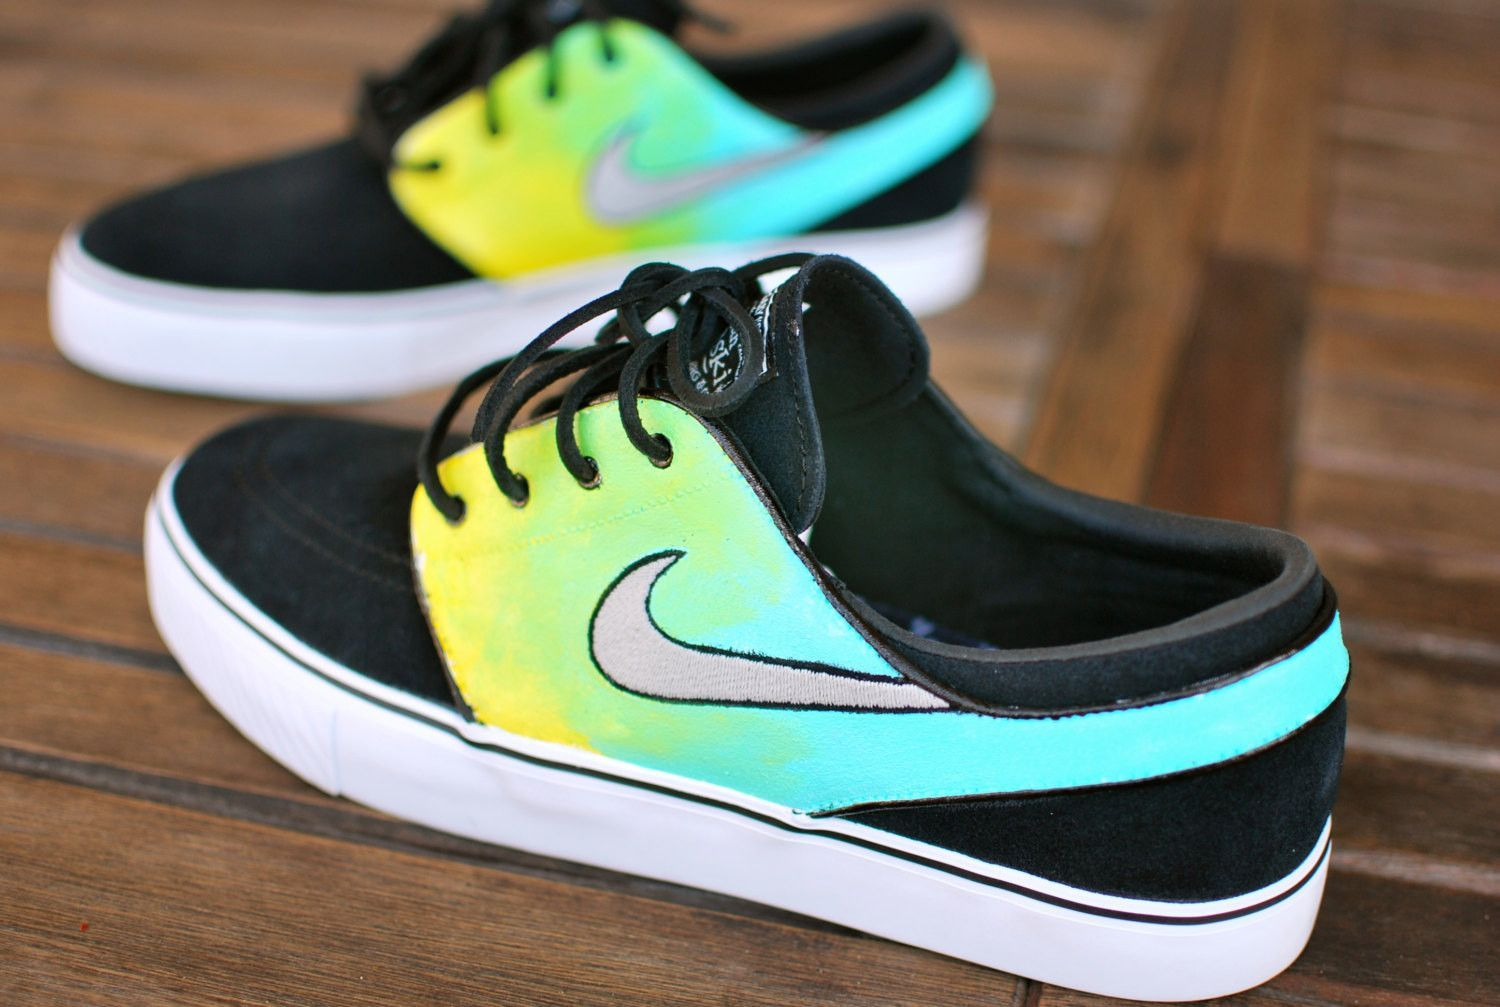 These Custom Nike Zoom Stefan Janoski skate shoes features my hand